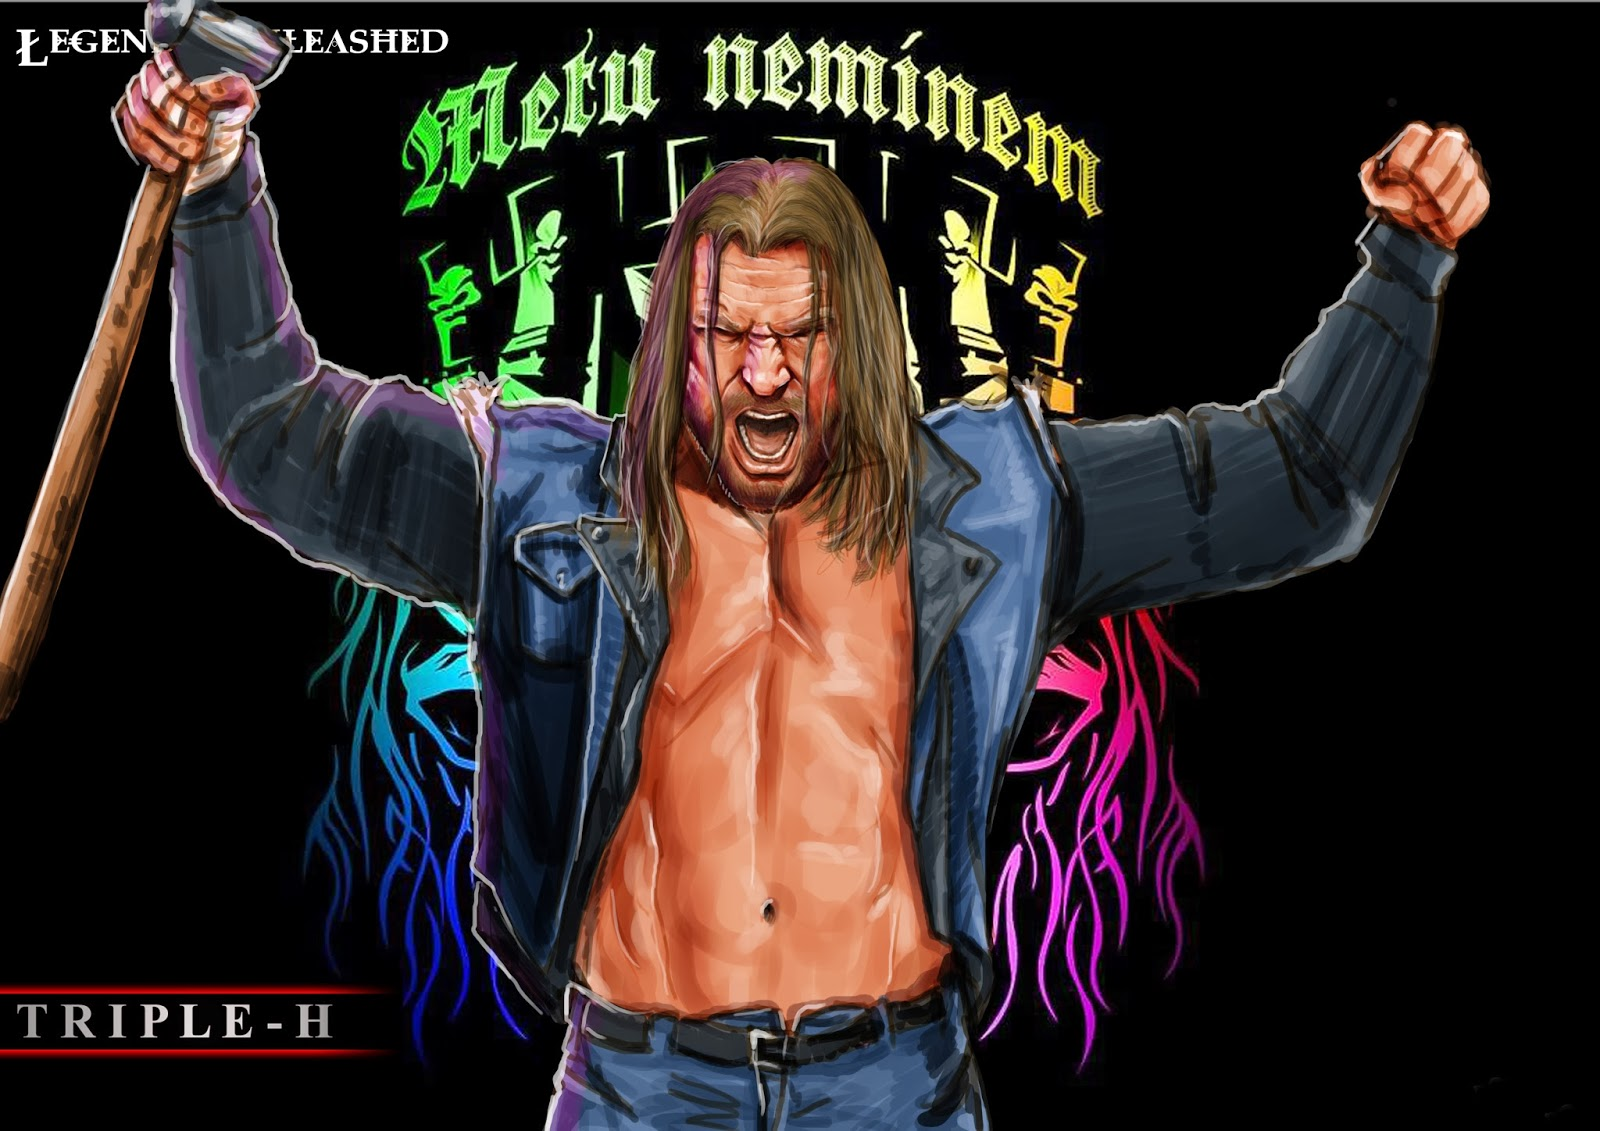 Download Wwe Wallpapers Games 1600x1131